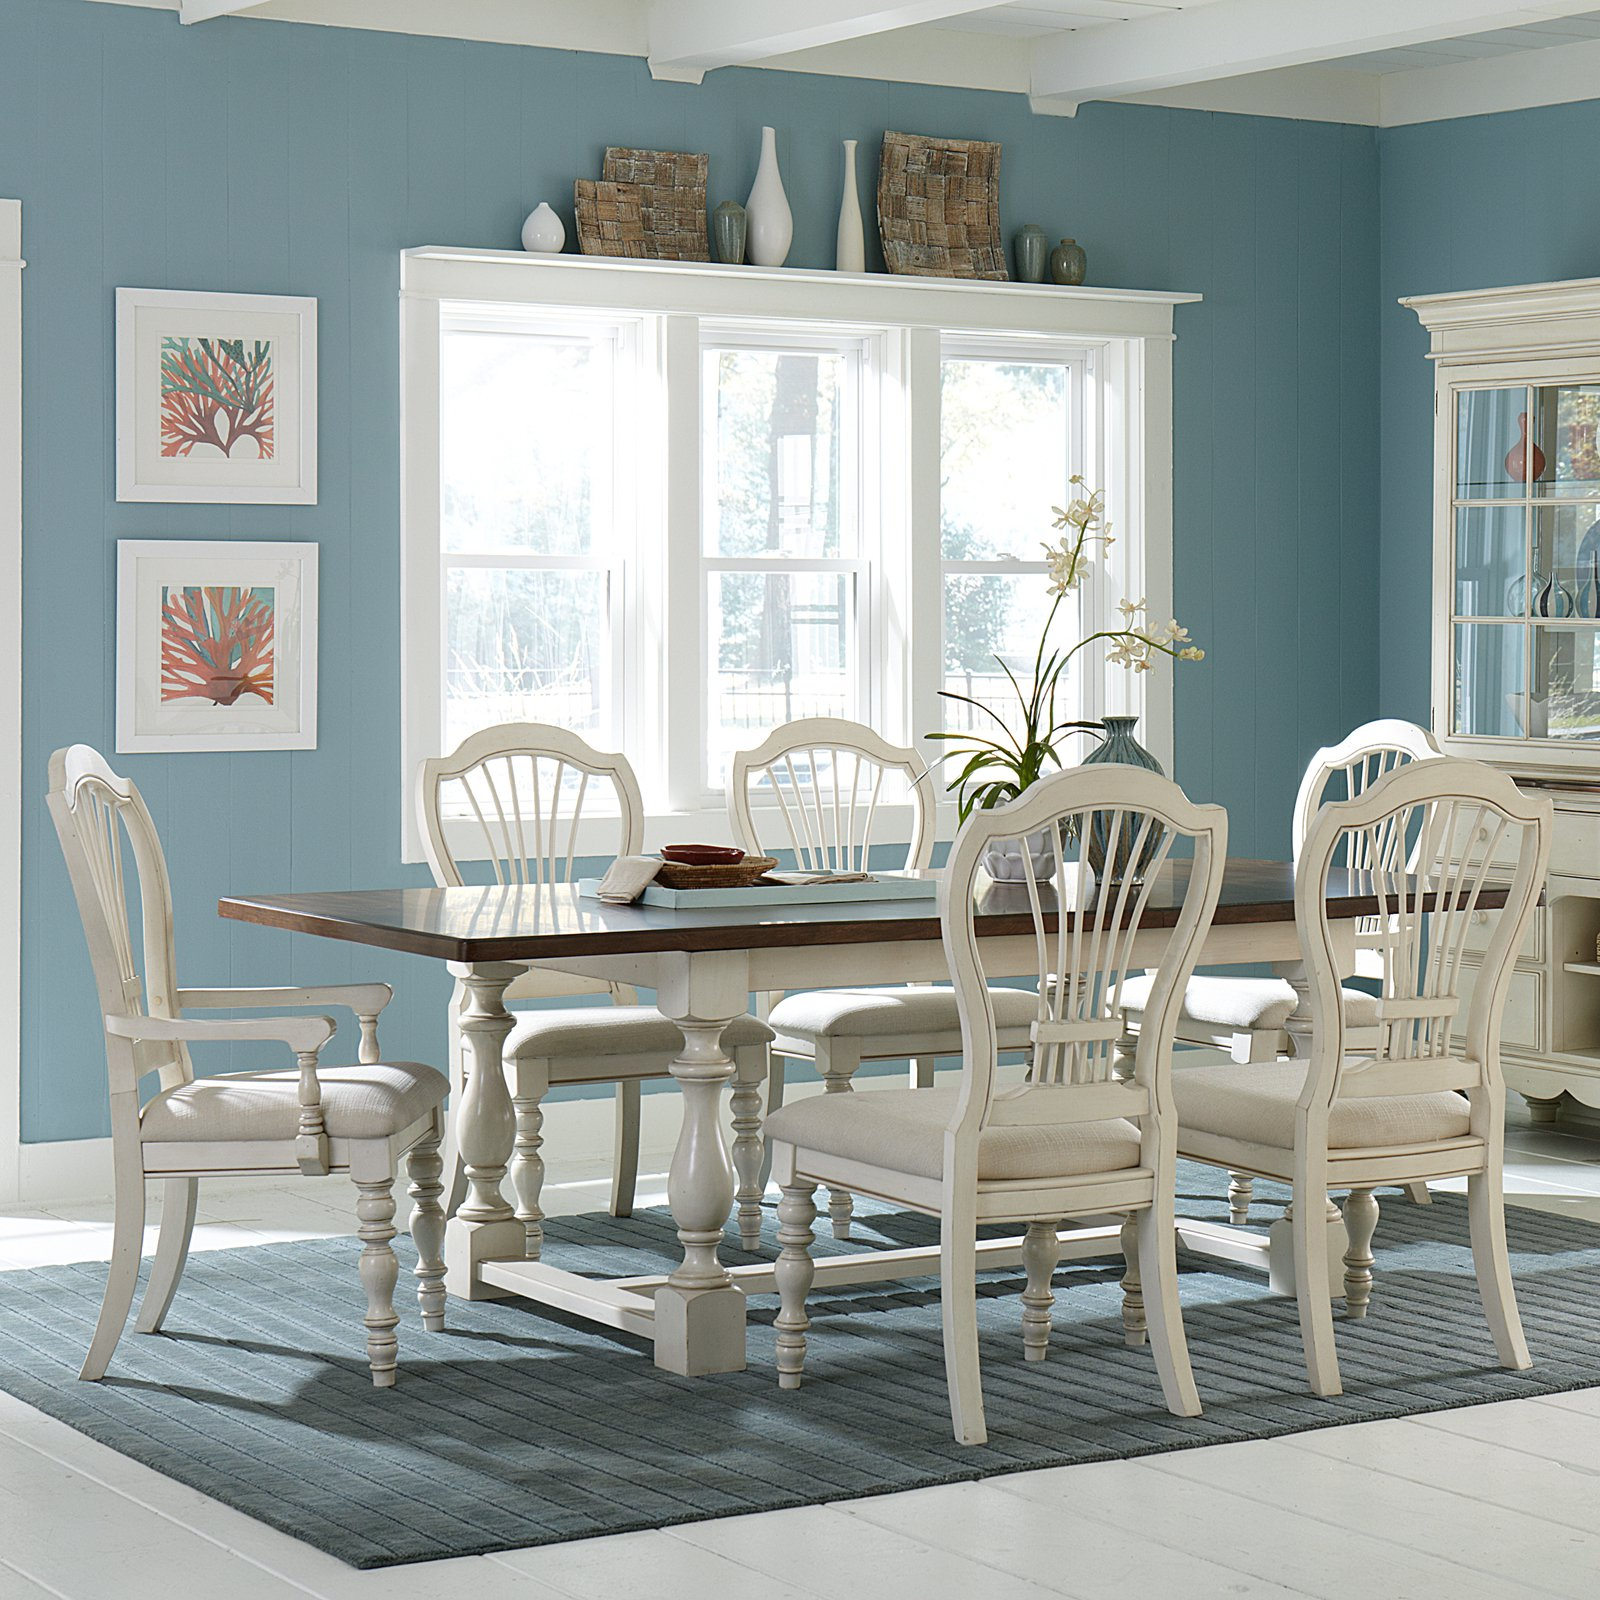 Hillsdale Pine Island 7 Piece Trestle Dining Table Set with Wheat Back Chairs & Hillsdale Pine Island 7 Piece Trestle Dining Table Set with Wheat ...